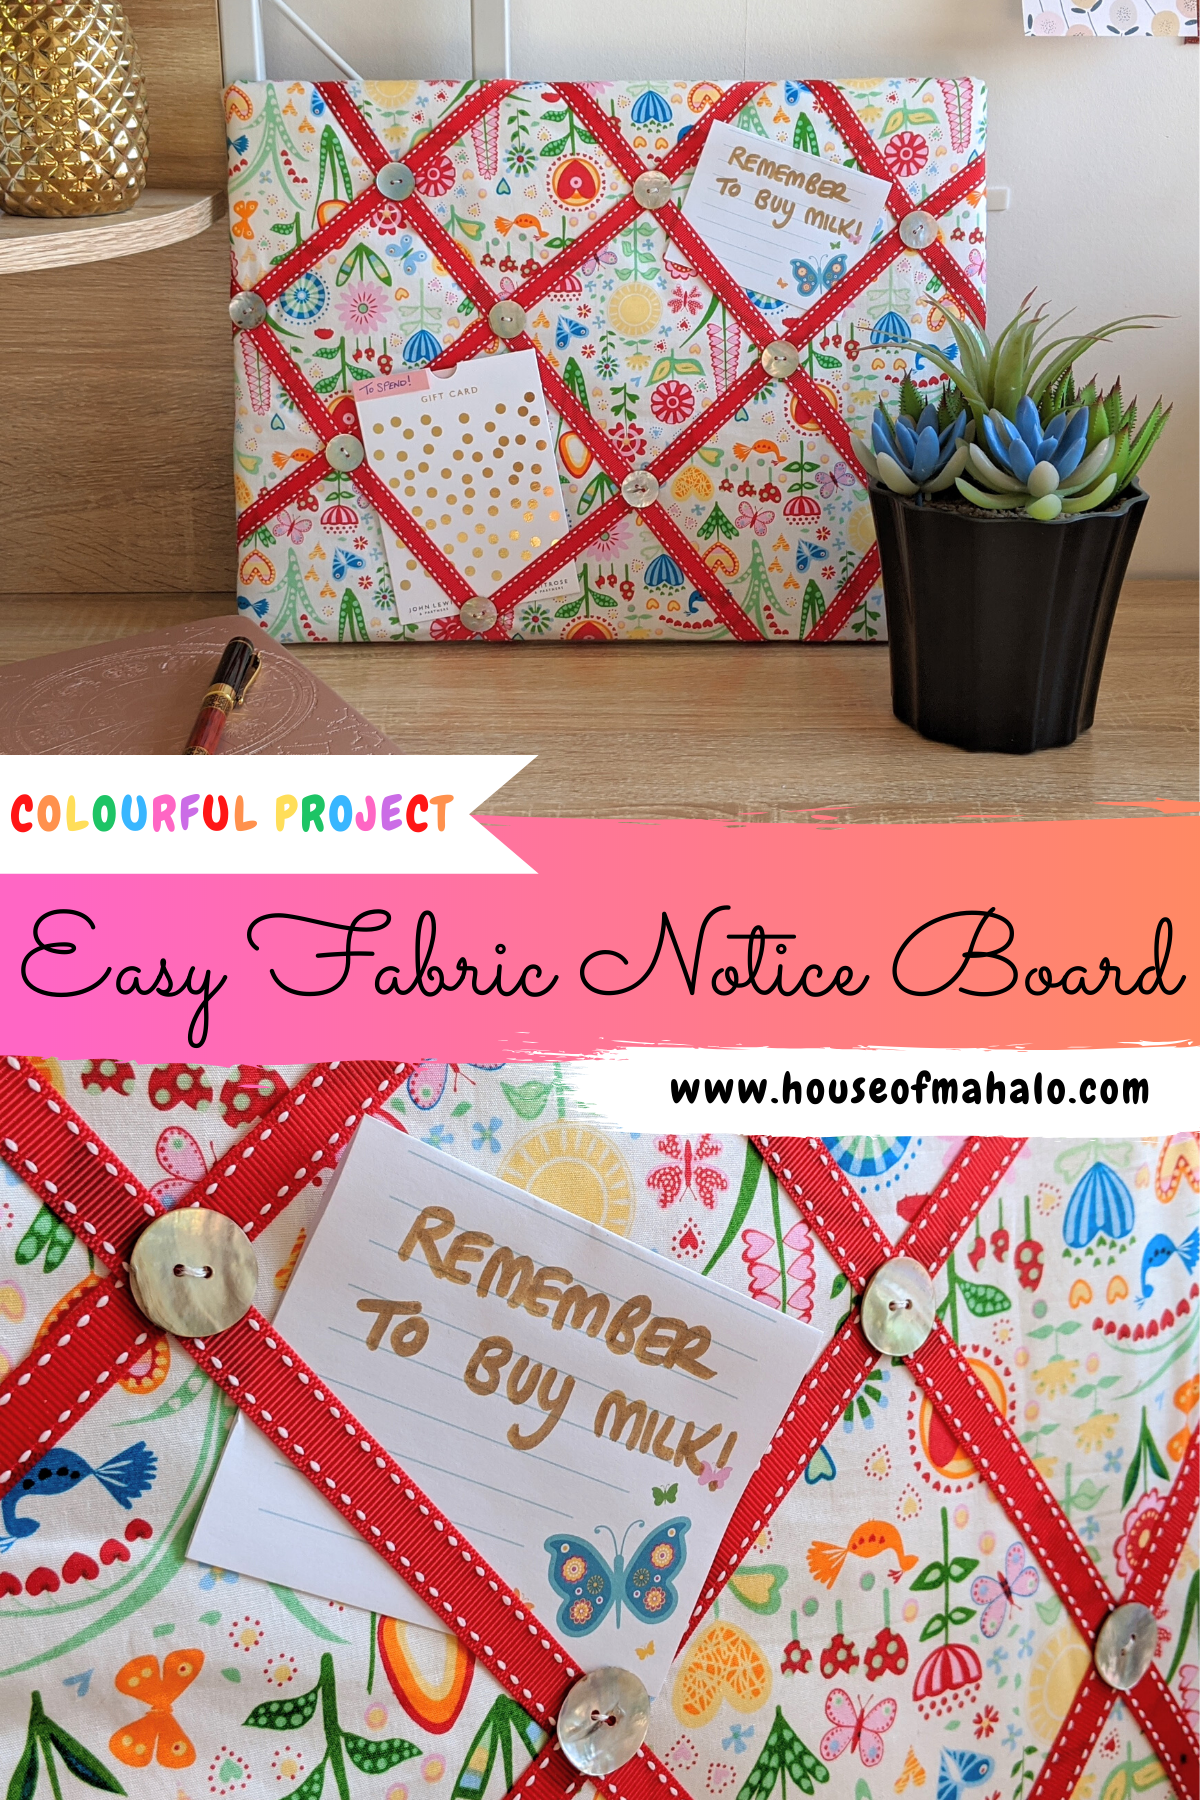 Bright & Colourful DIY Fabric Notice Board - House of Mahalo